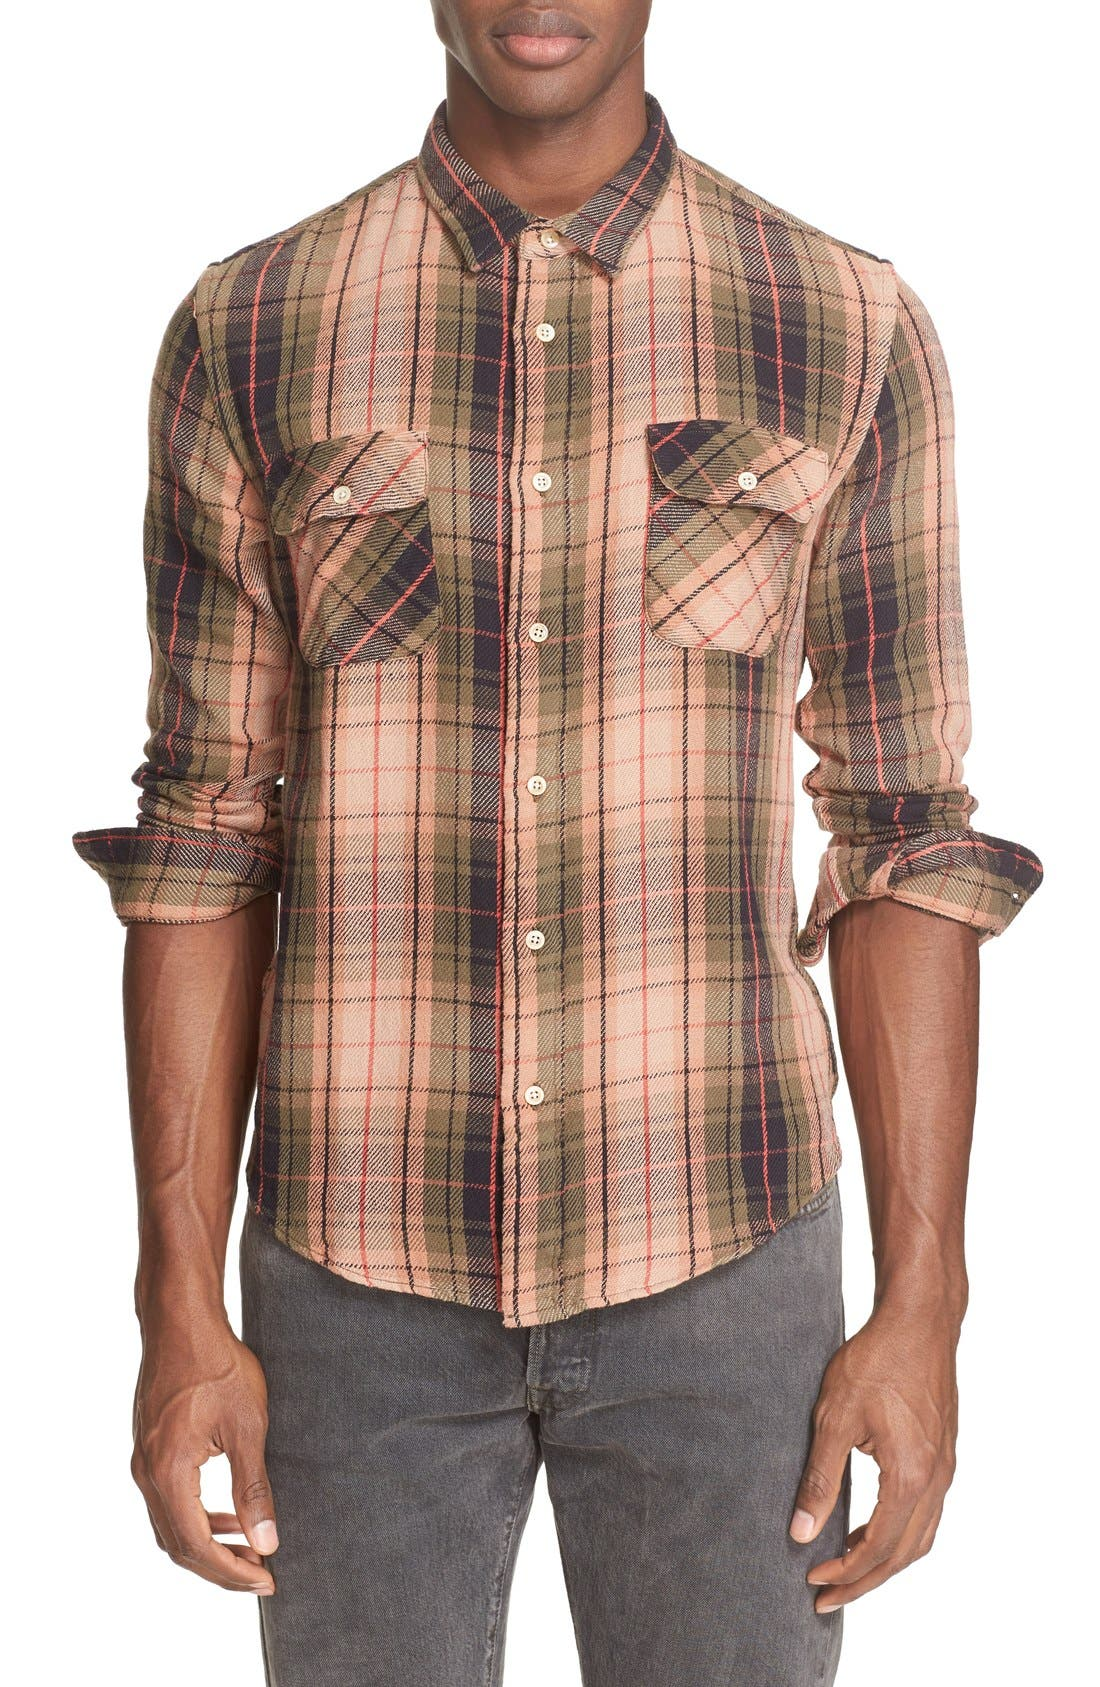 LEVI'S® VINTAGE CLOTHING Shorthorn Plaid Shirt